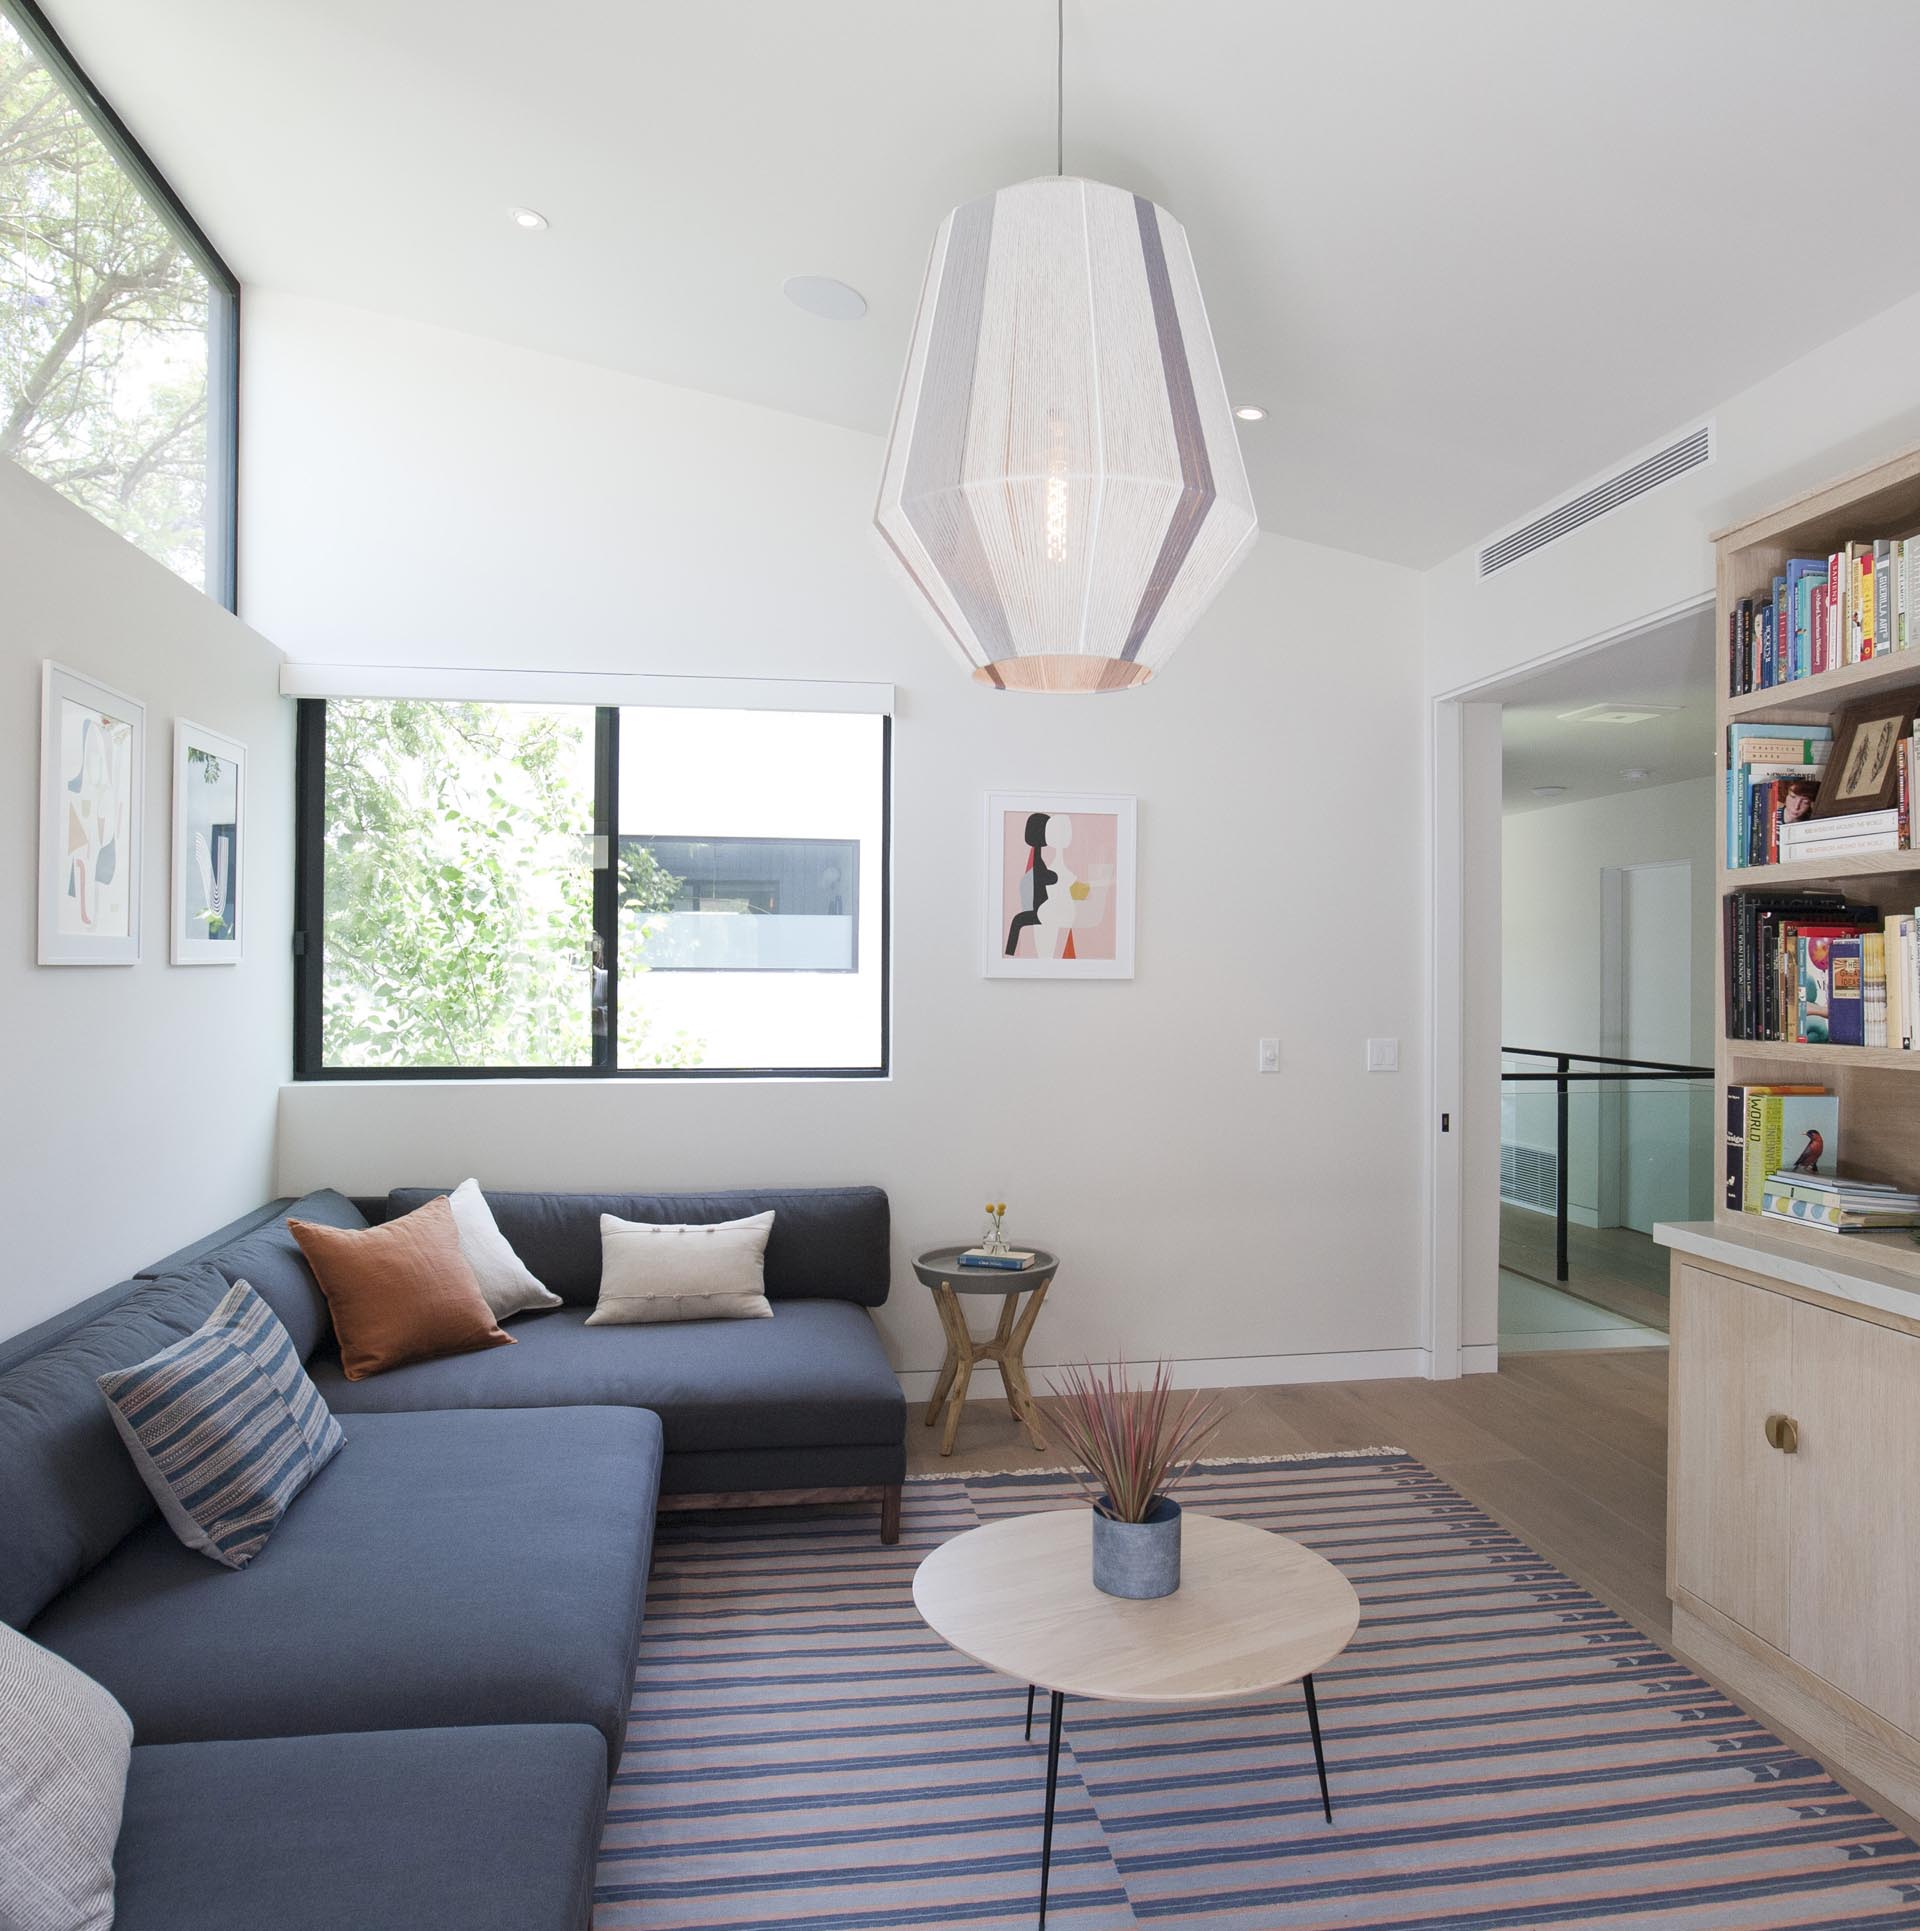 In his modern casual living / reading room, there's a dark gray sofa and a cabinet with open shelving filled with books.